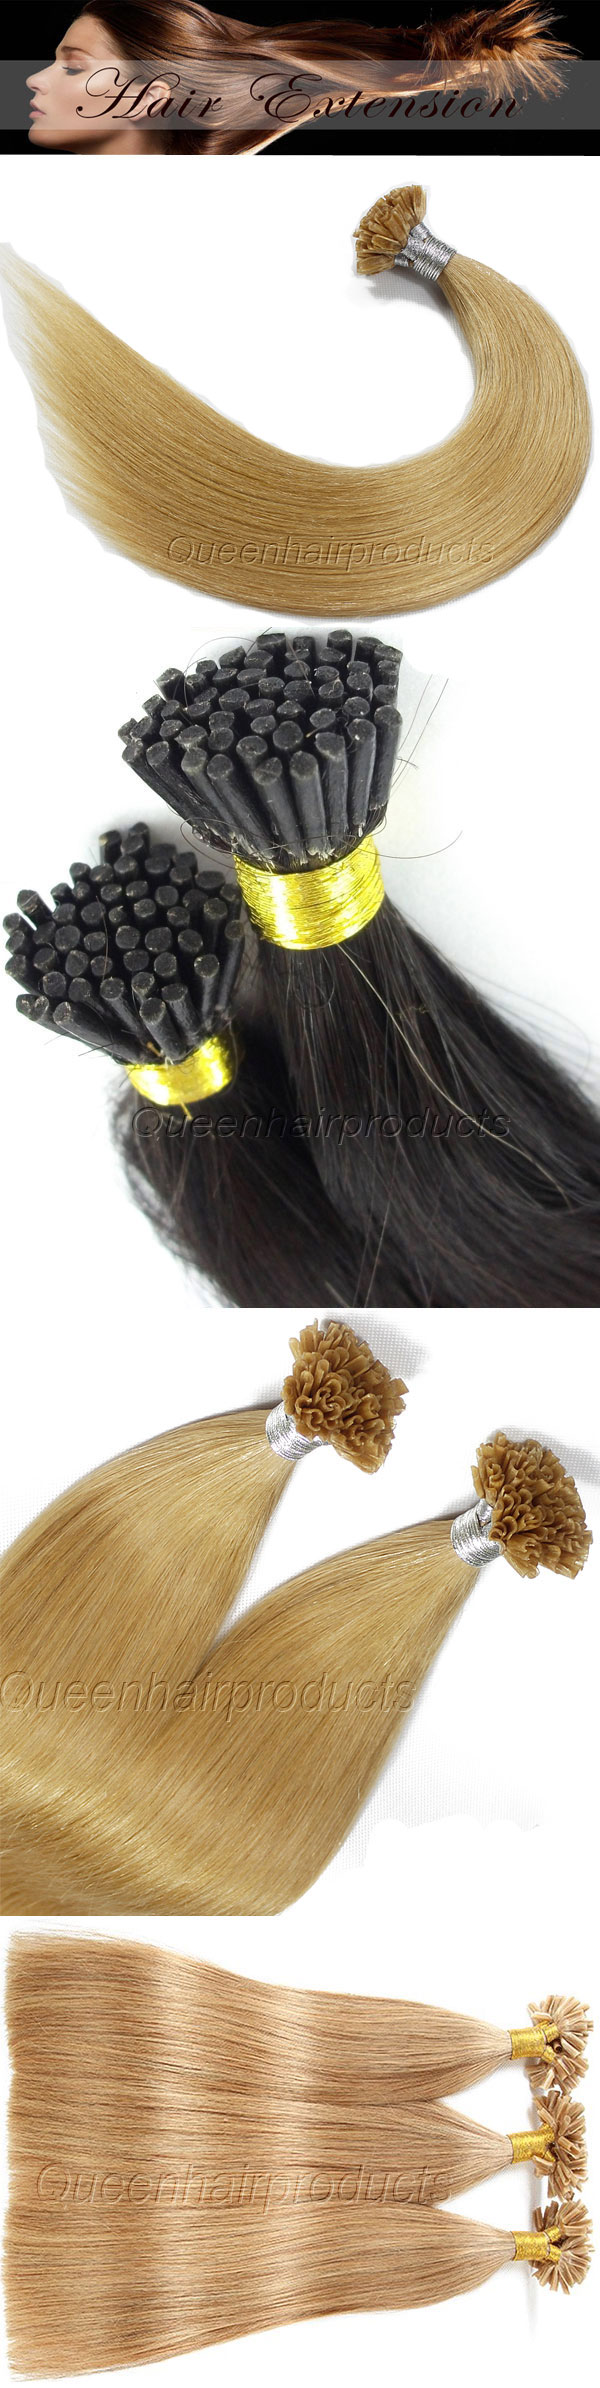 Indian Virgin Remy Pre Bonded Hair Extensions Manufacturerfactory